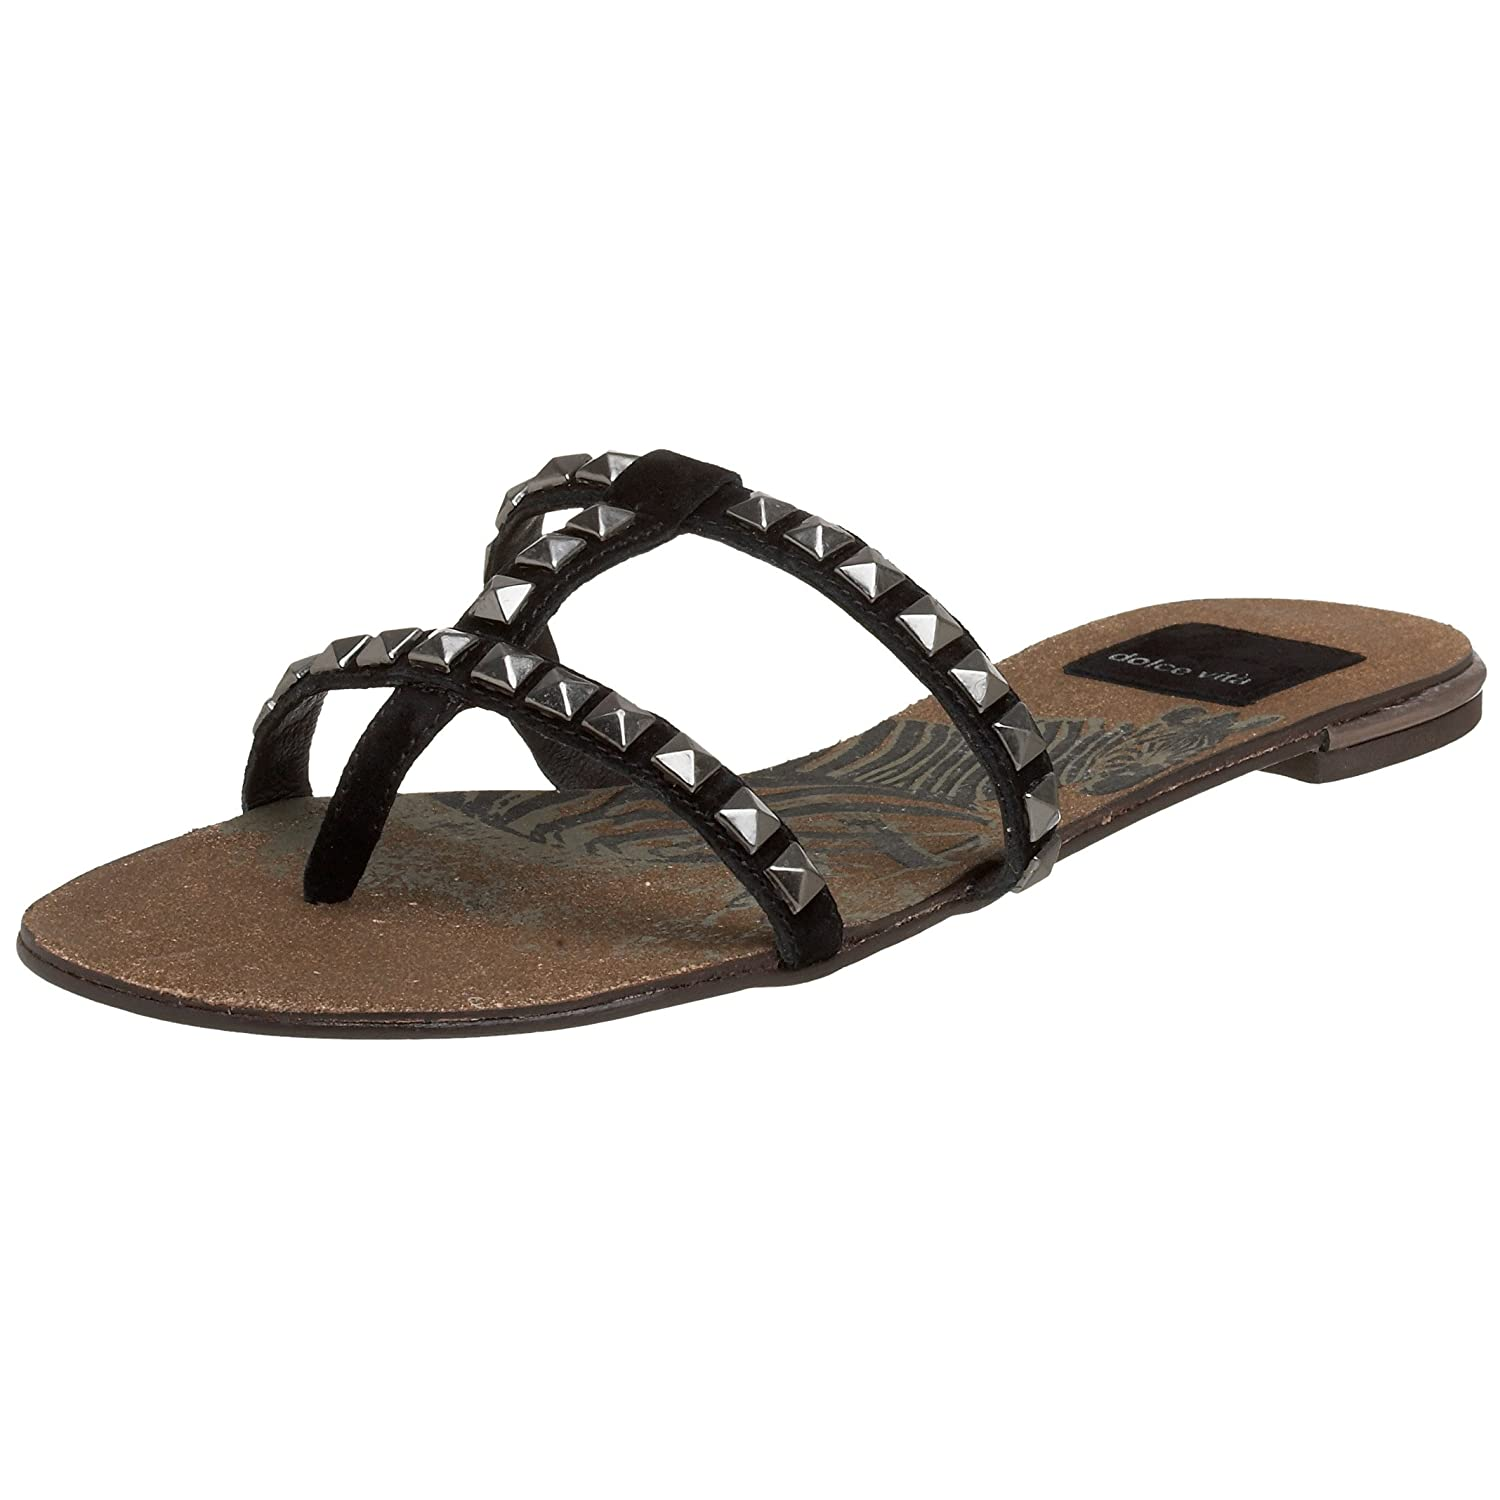 Dolce Vita Bo Sandal - Free Overnight Shipping & Return Shipping: Endless.com from endless.com